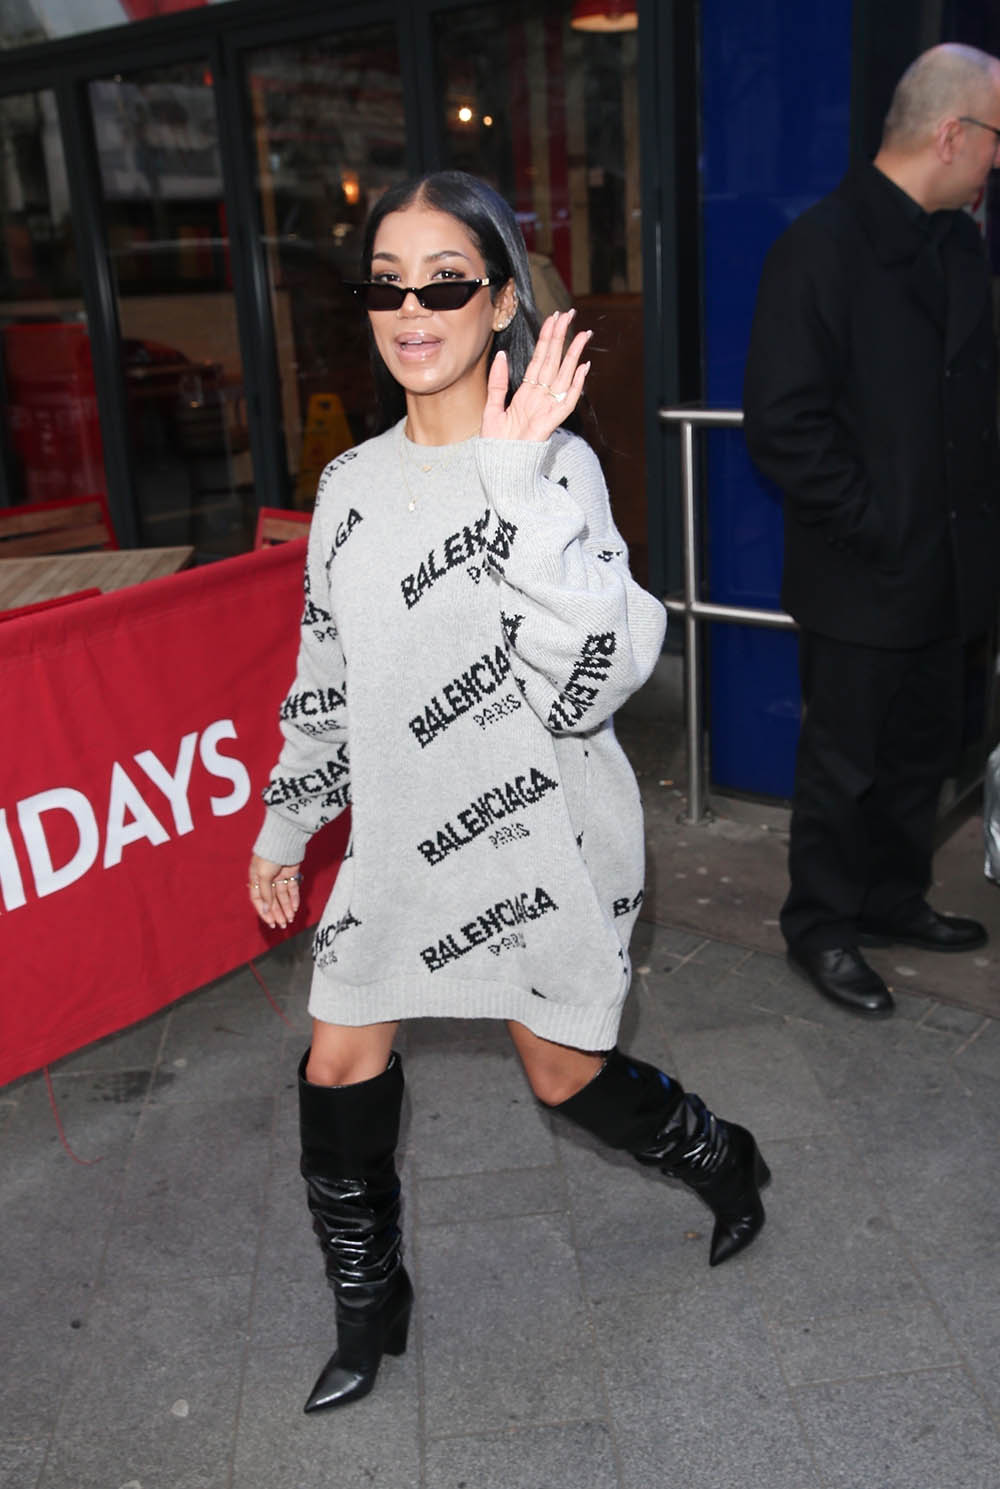 Jhene Aiko at the Global Radio Studios in London